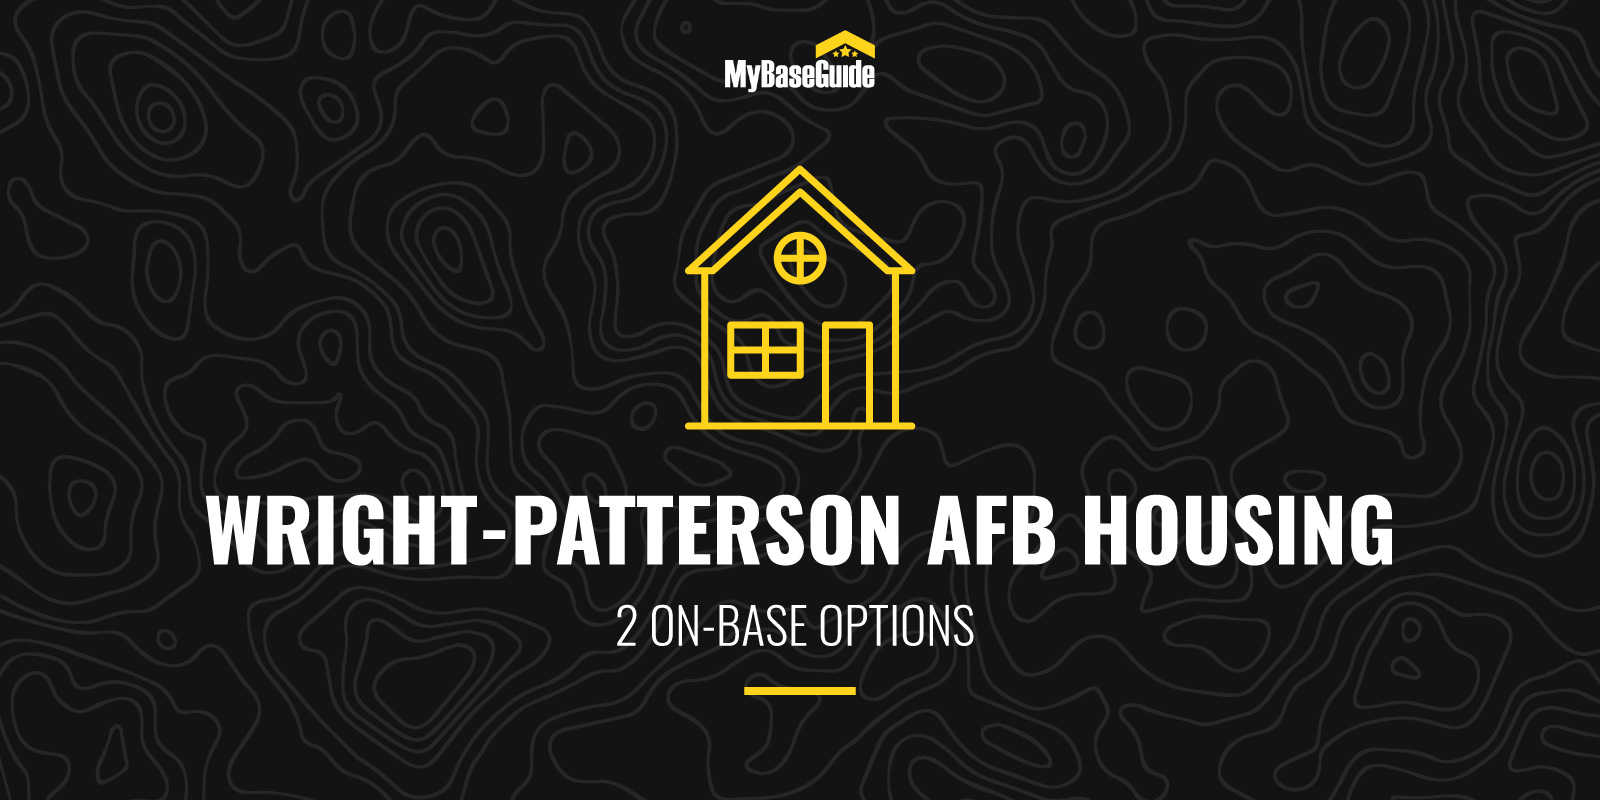 Wright-Patterson AFB Housing: 2 On-Base Options